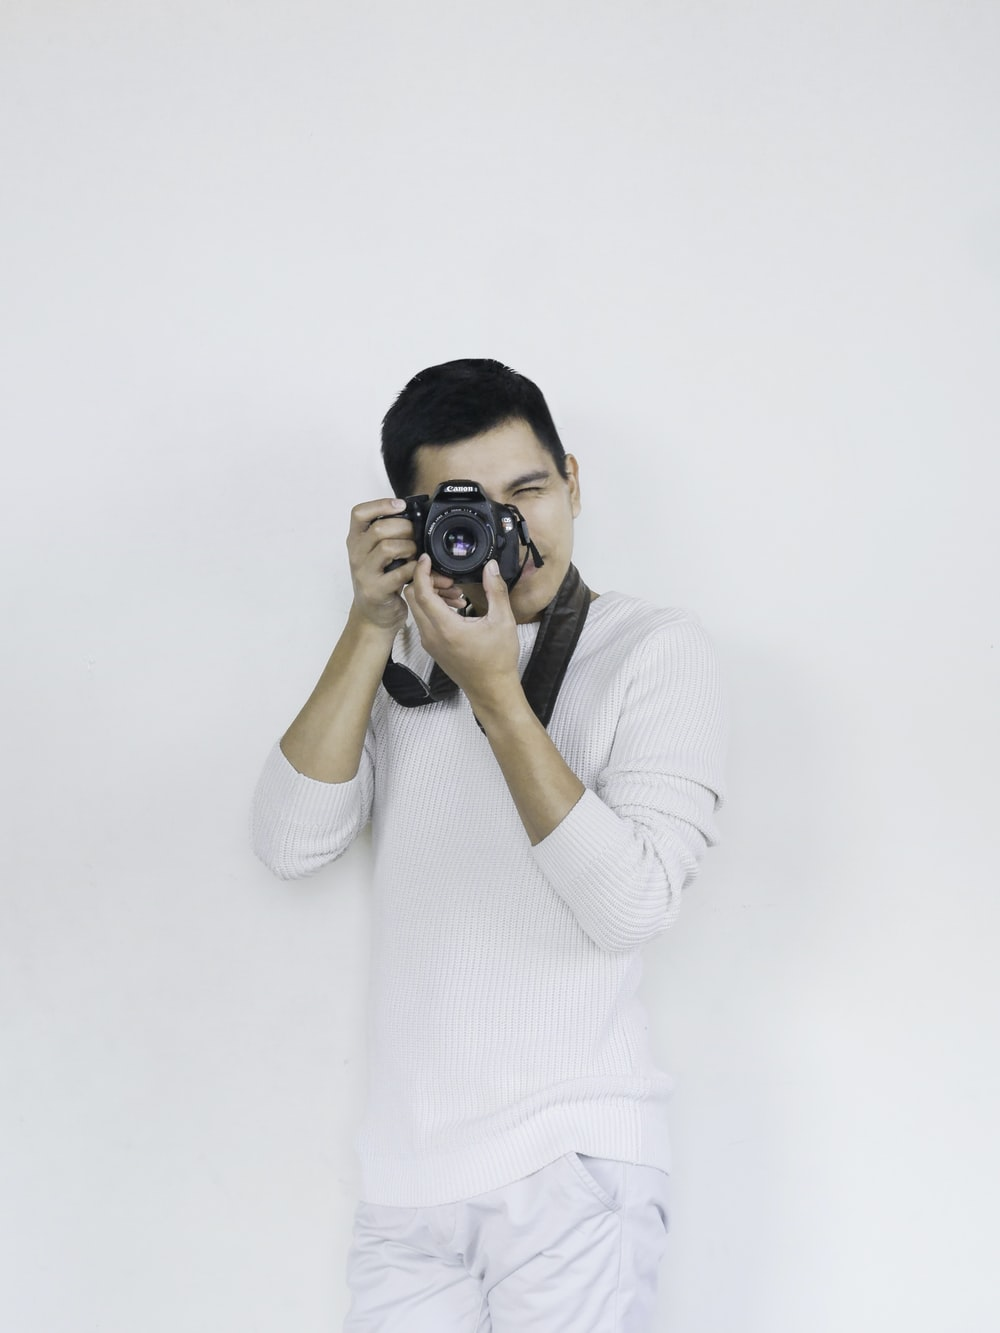 woman in white sweater holding black dslr camera